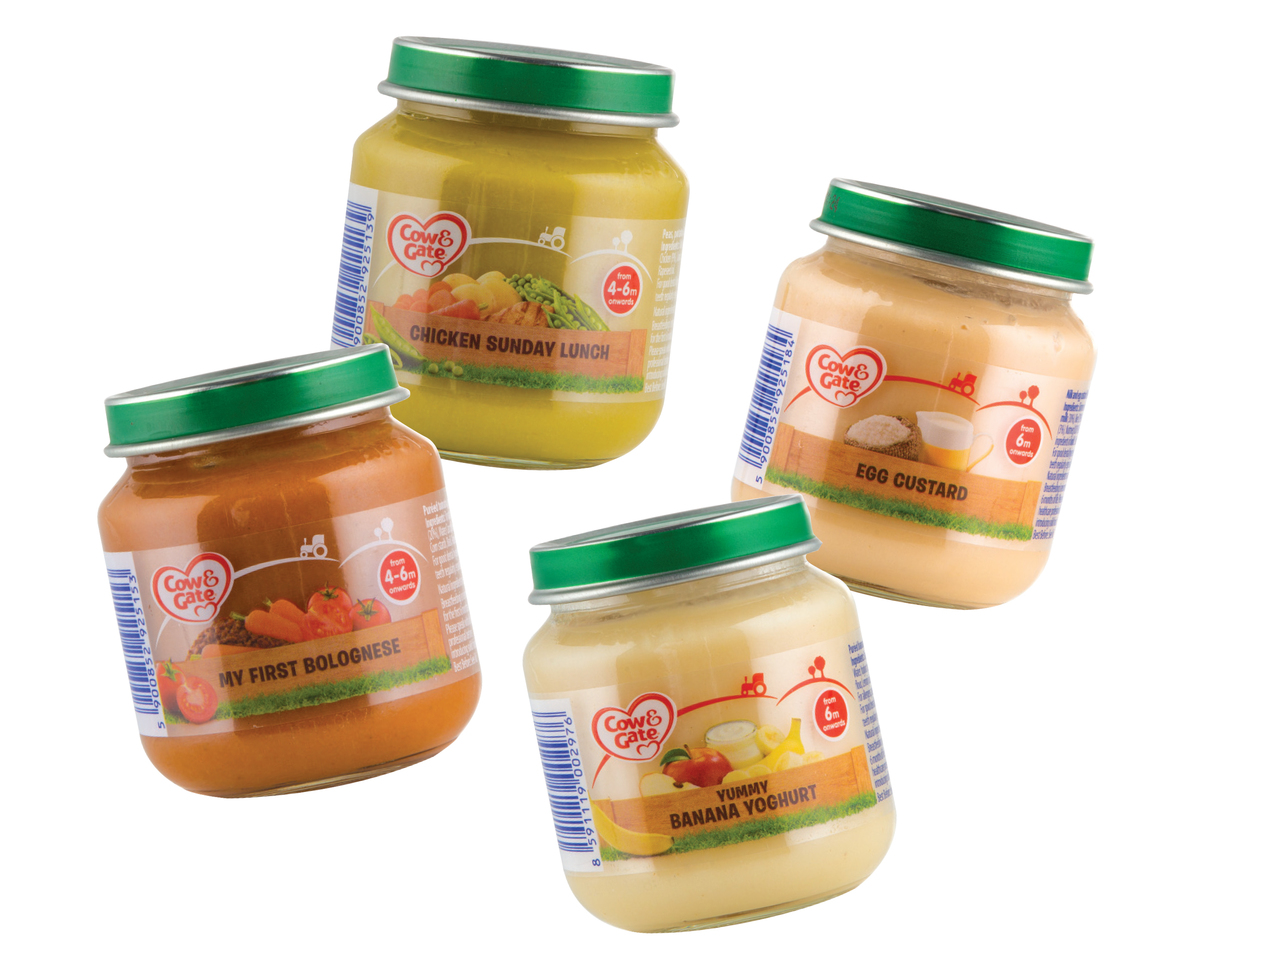 Cow Gate Baby Food Jars Lidl Northern Ireland Specials Archive